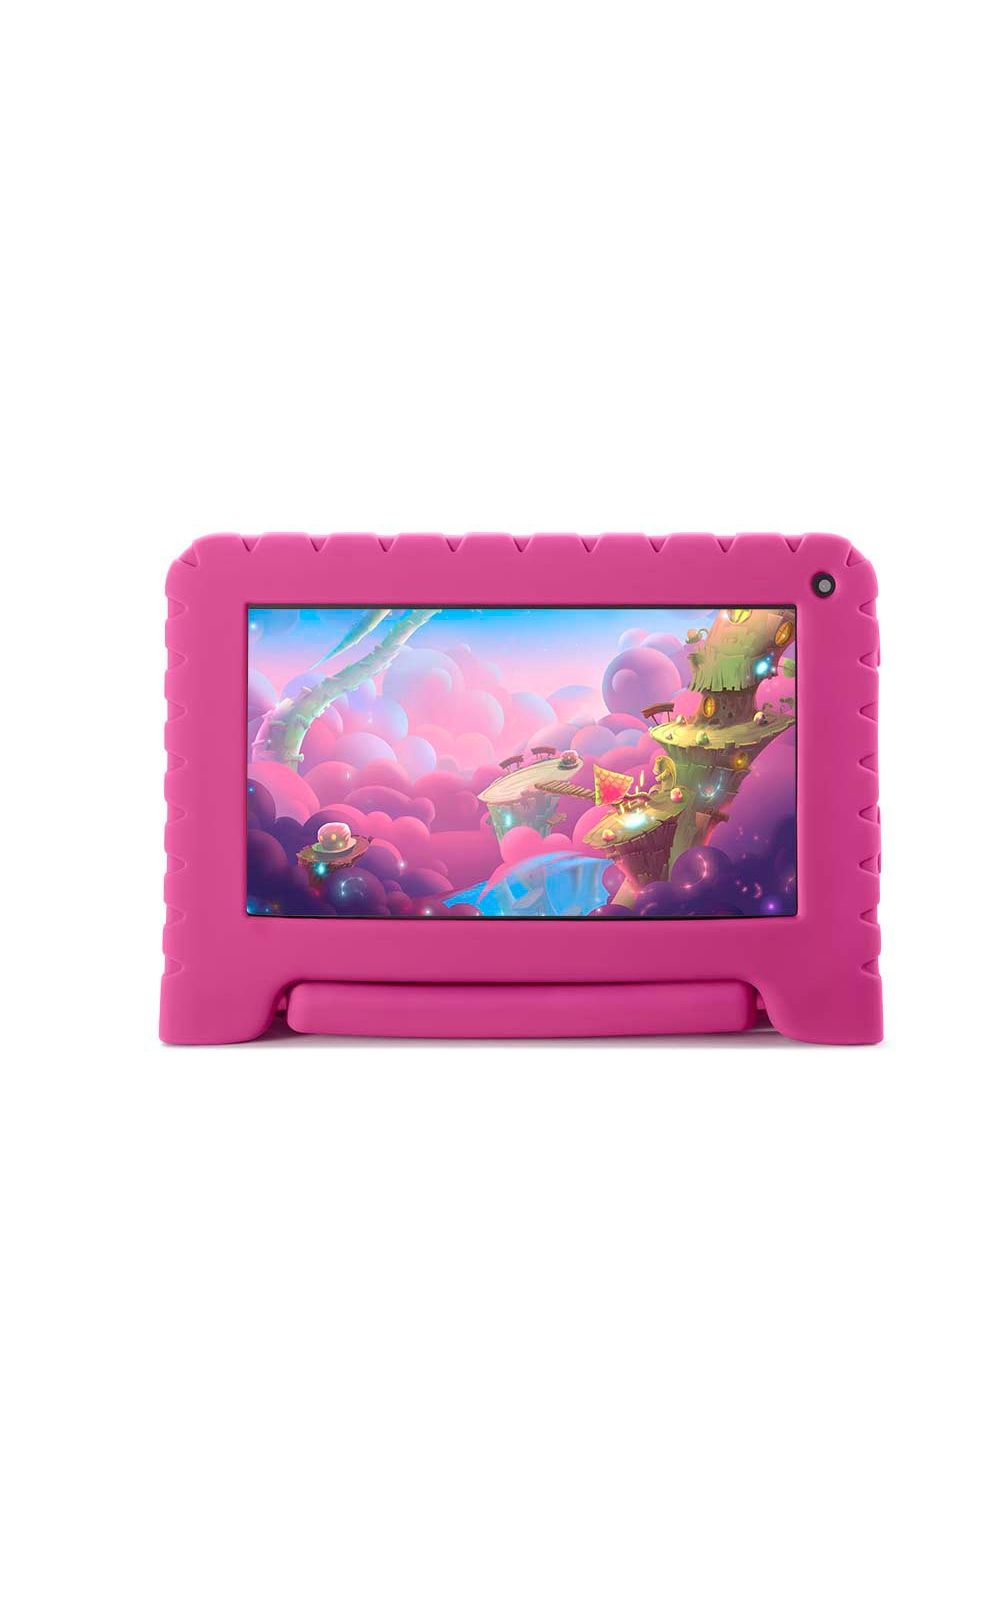 Foto 2 - Tablet Kid Pad Lite Multilaser 7 Pol. 16GB Quad Core Android 8.1 Rosa - NB303